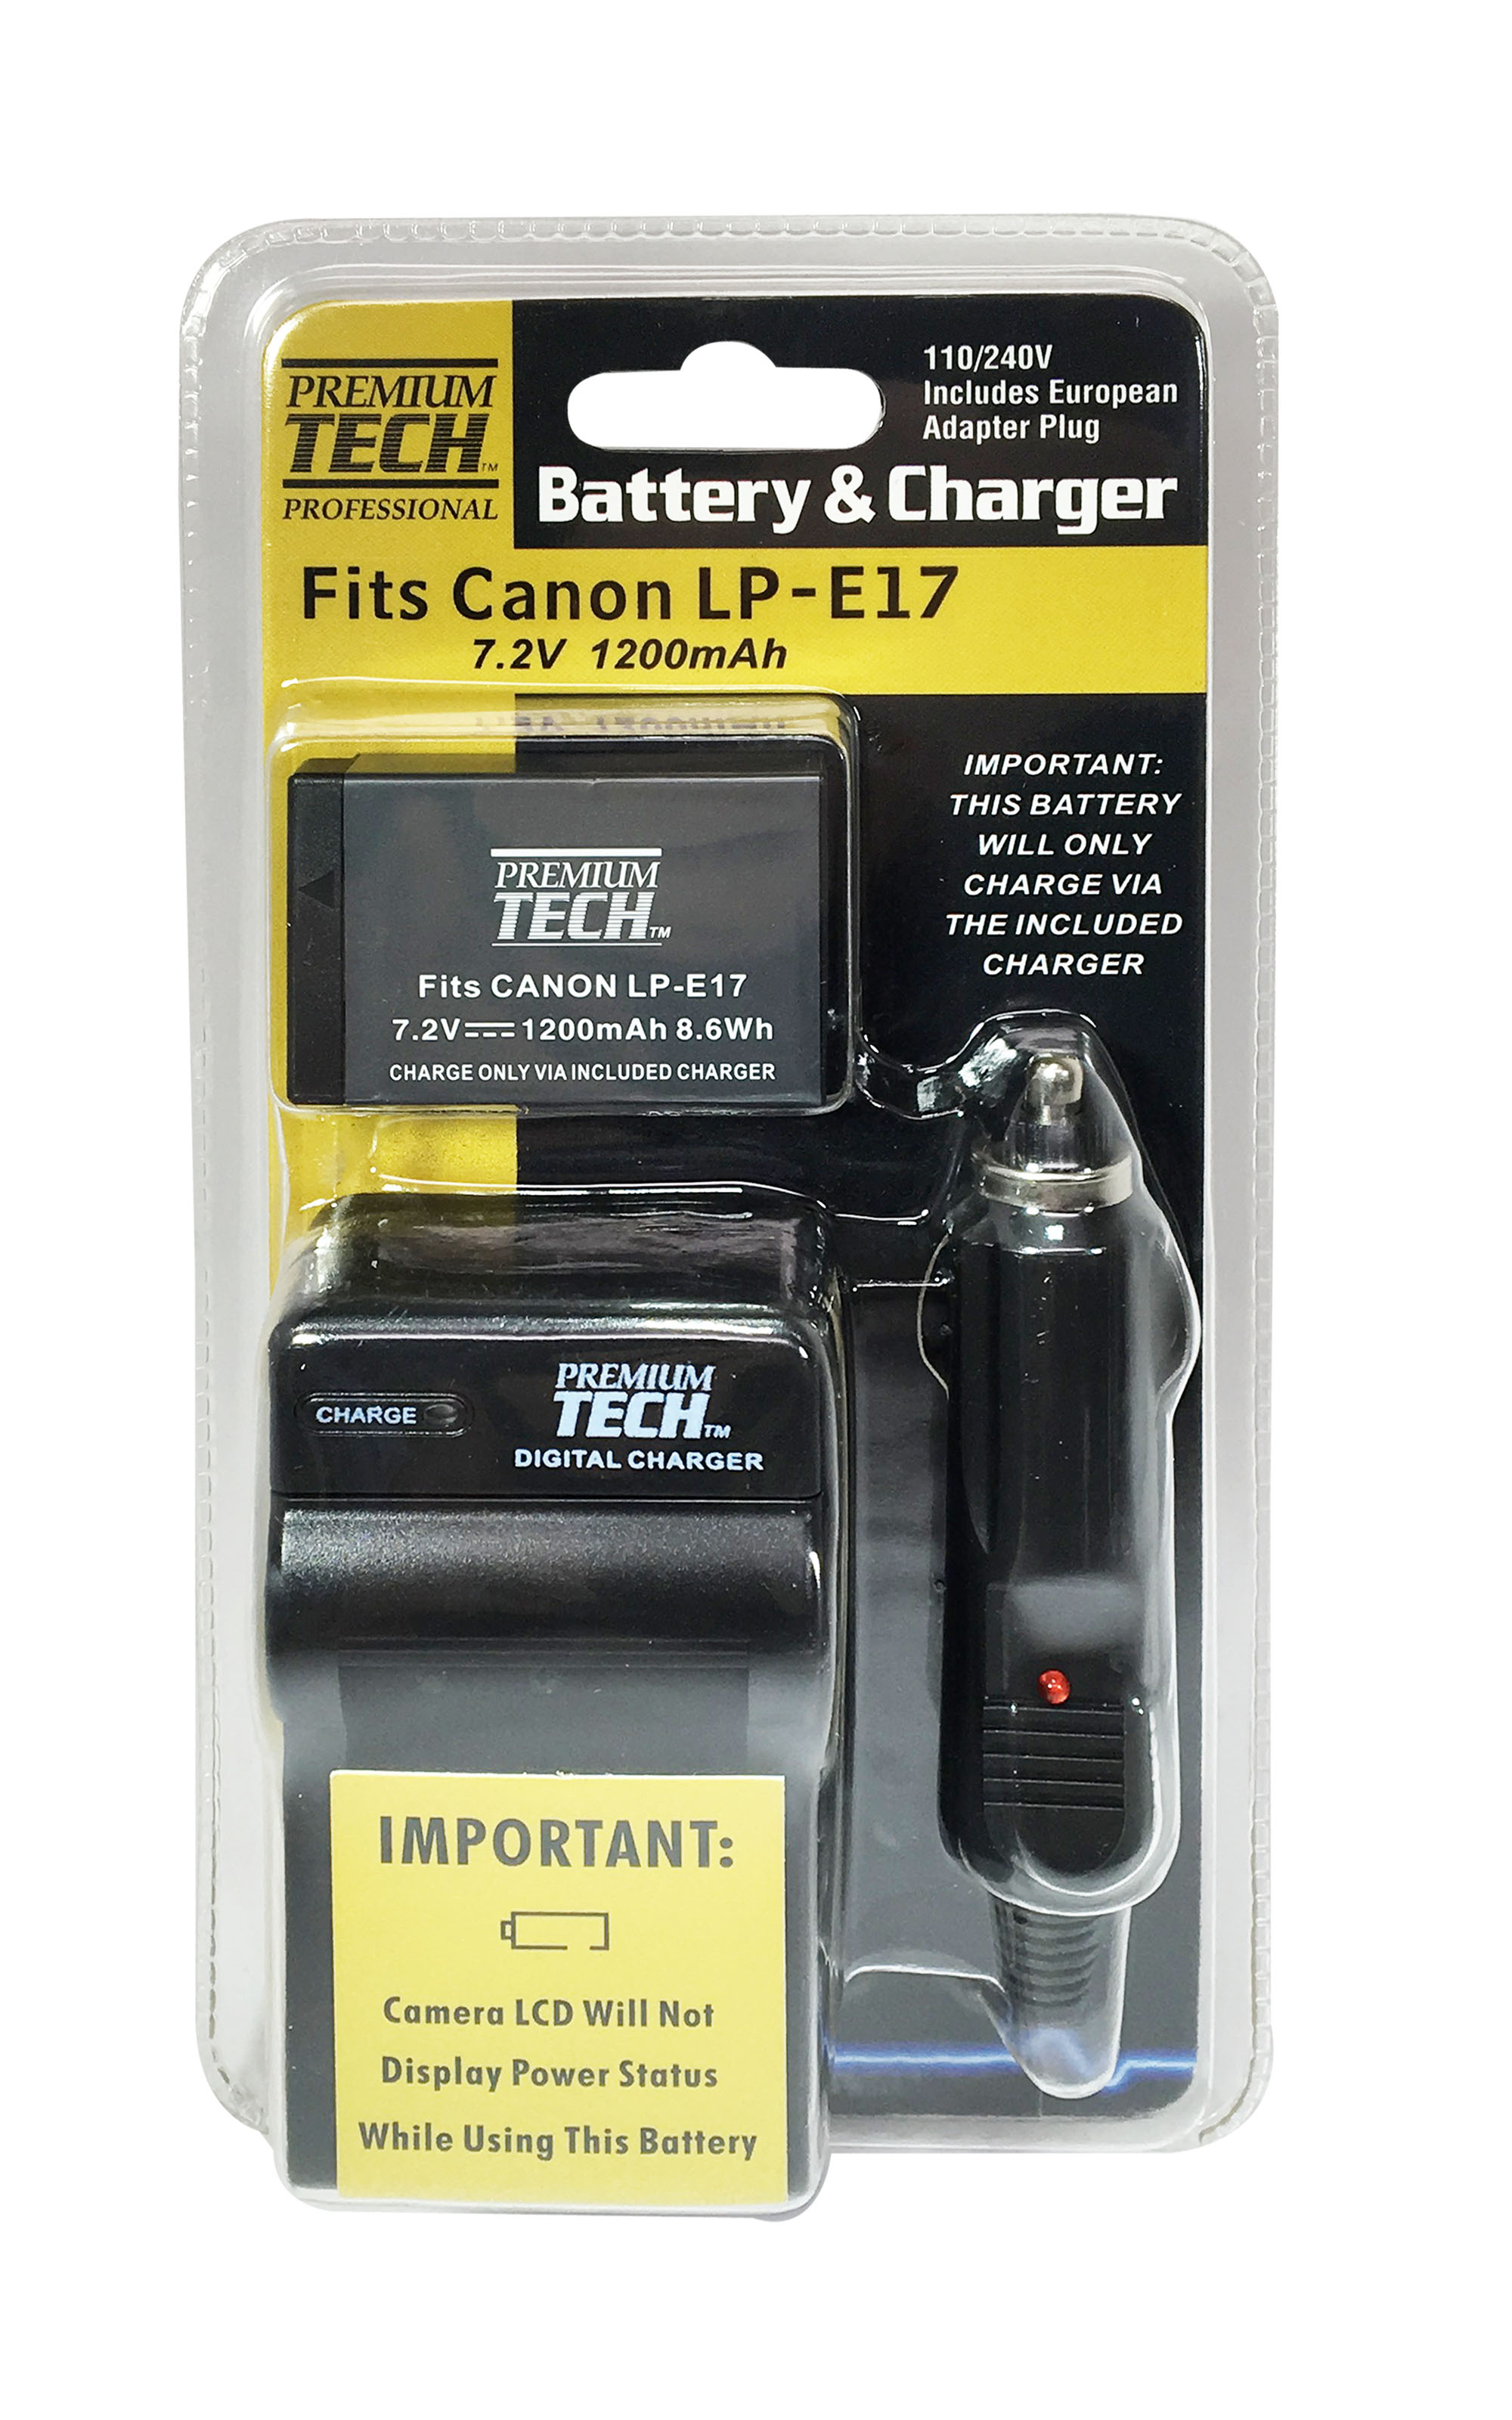 Battery and Charger Kit for Canon LP-E17 - non-decoded